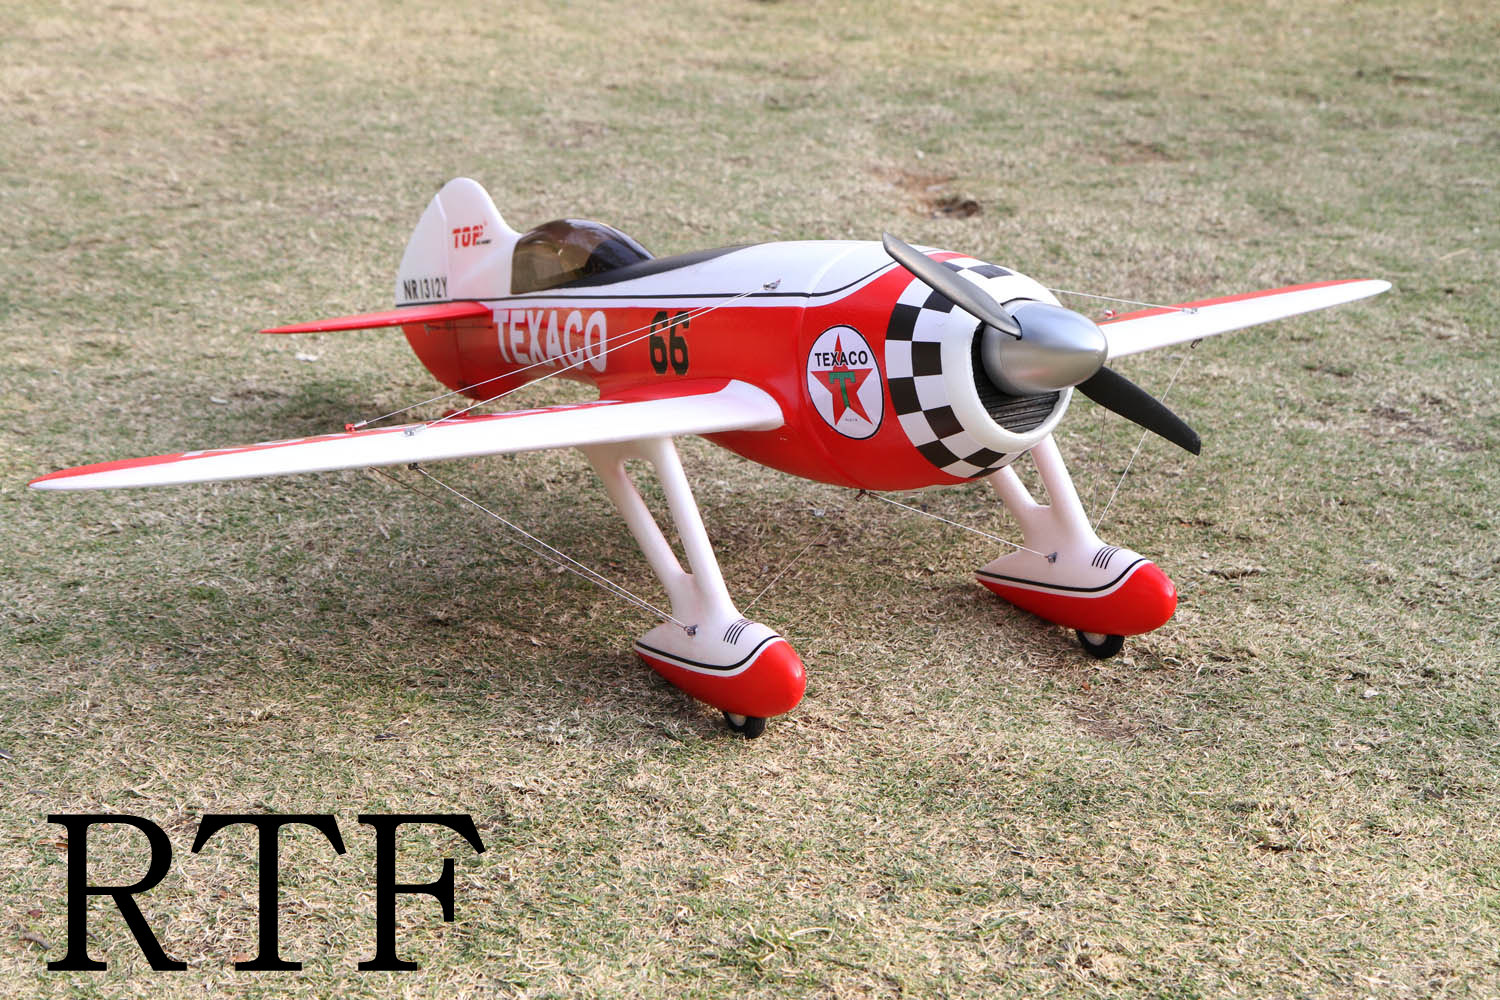 TOP RC Gee Bee R3R RC Airplane RTF version - SN Hobbies